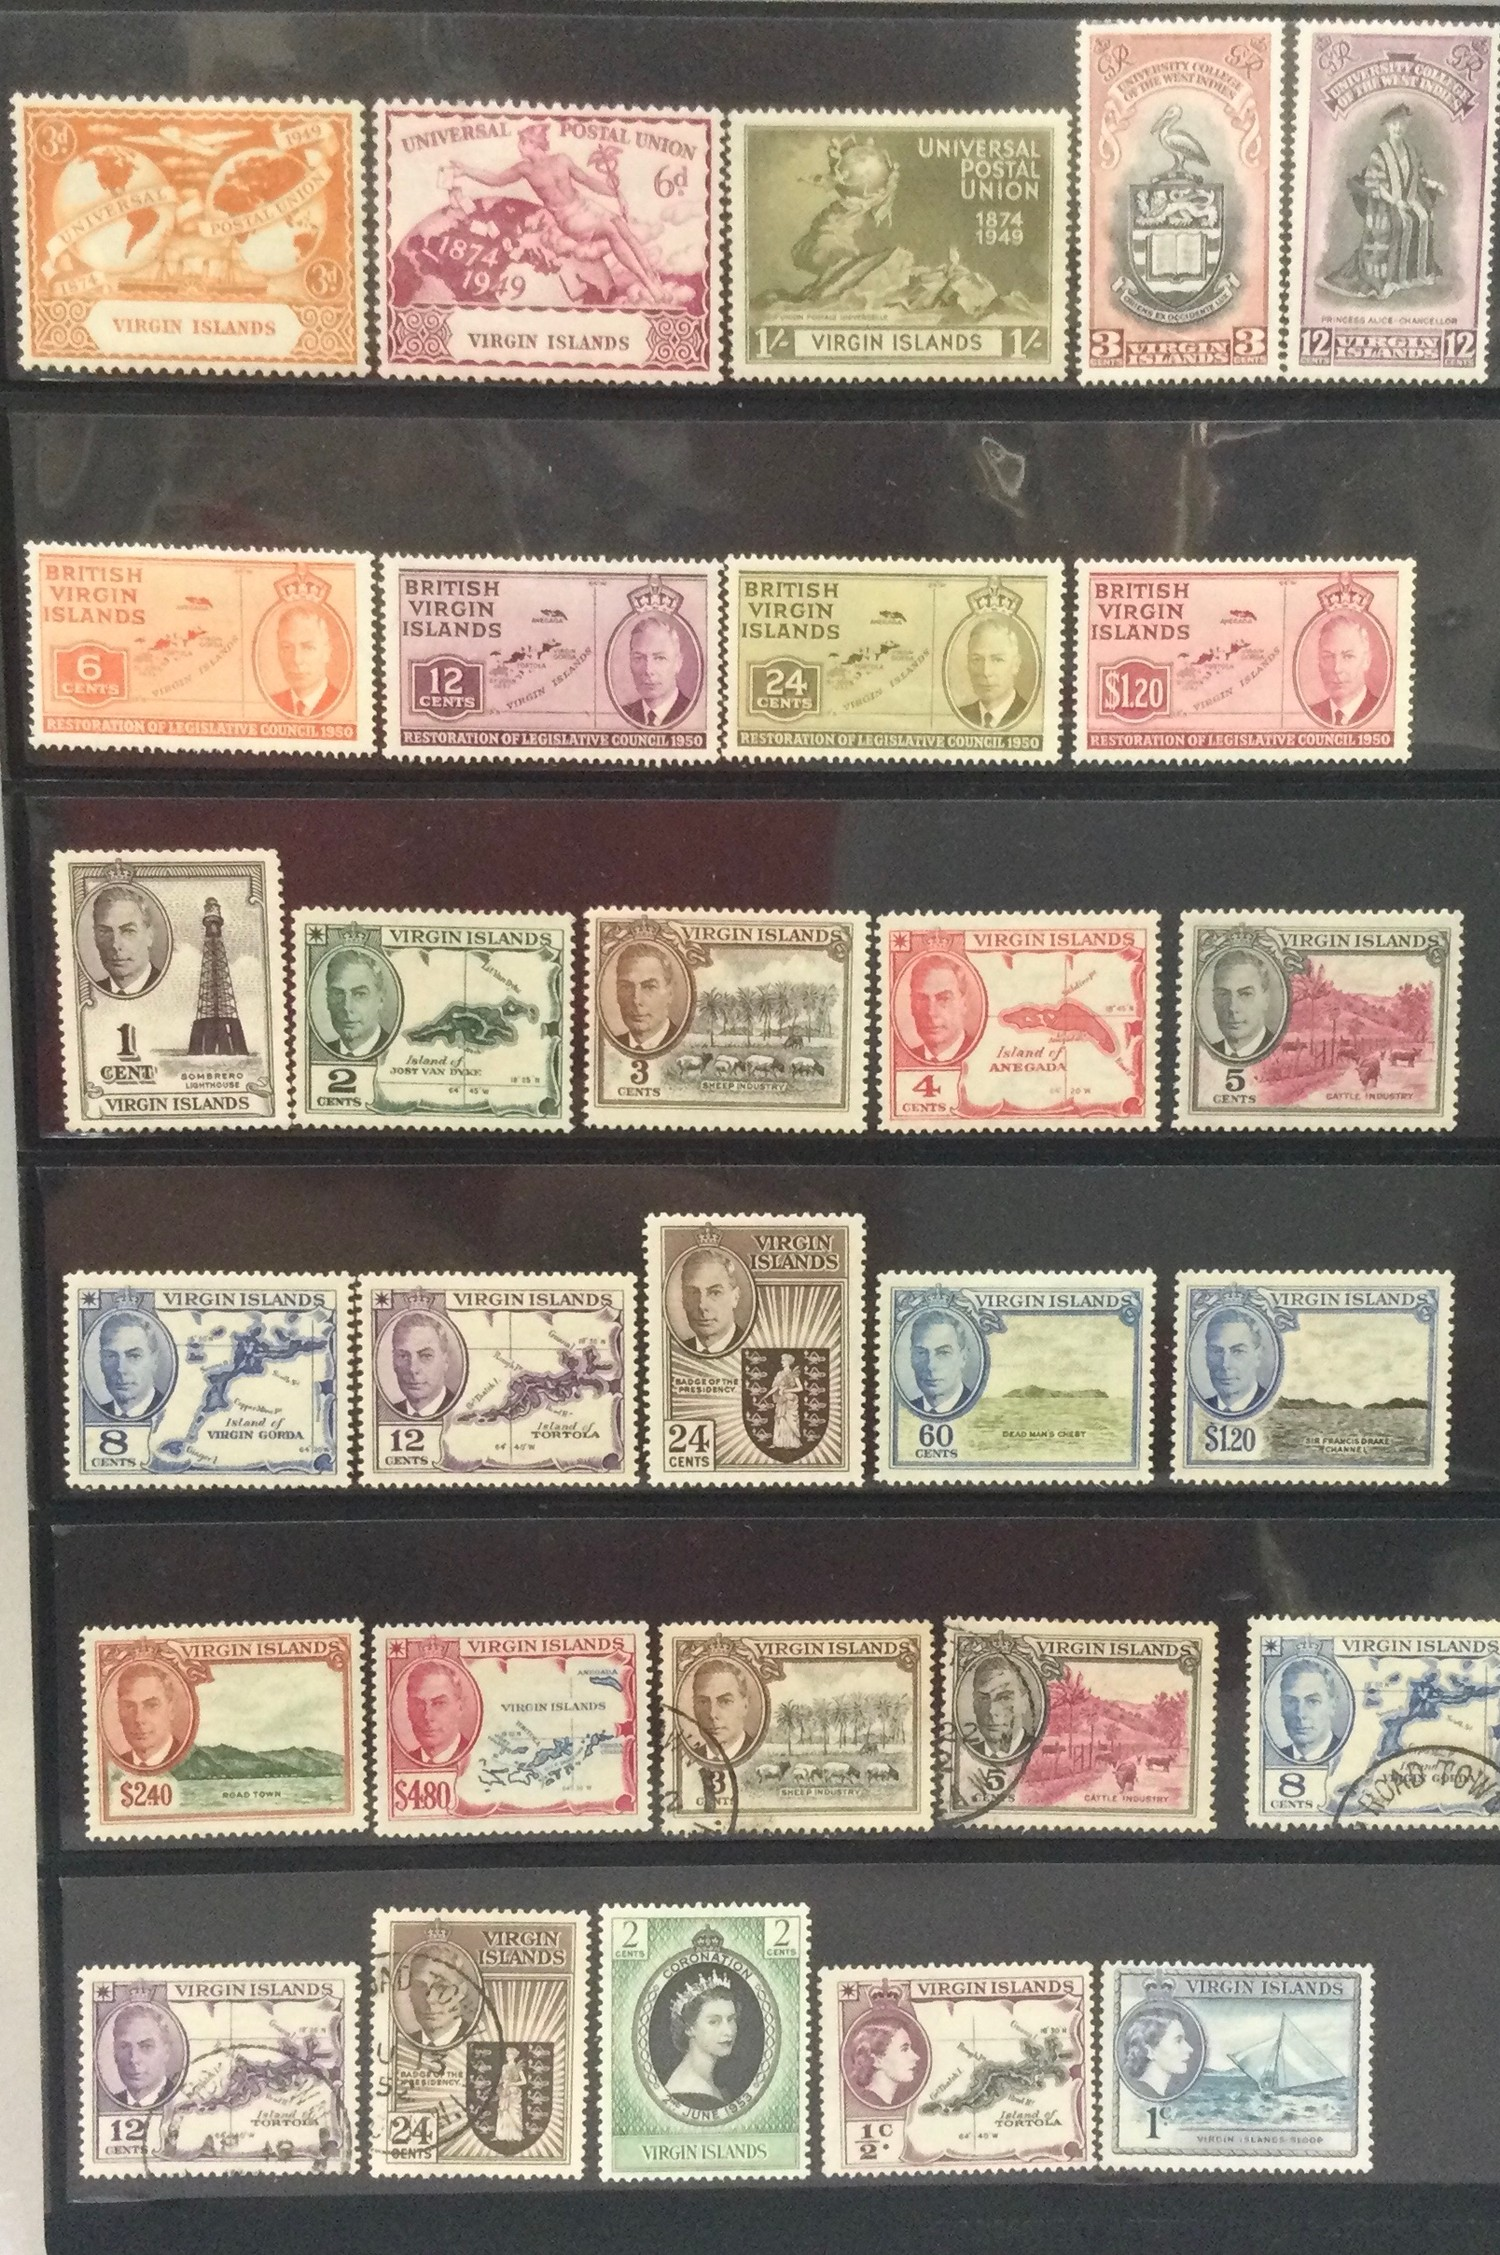 Virgin islands. double sided stock card of mainly mint issues